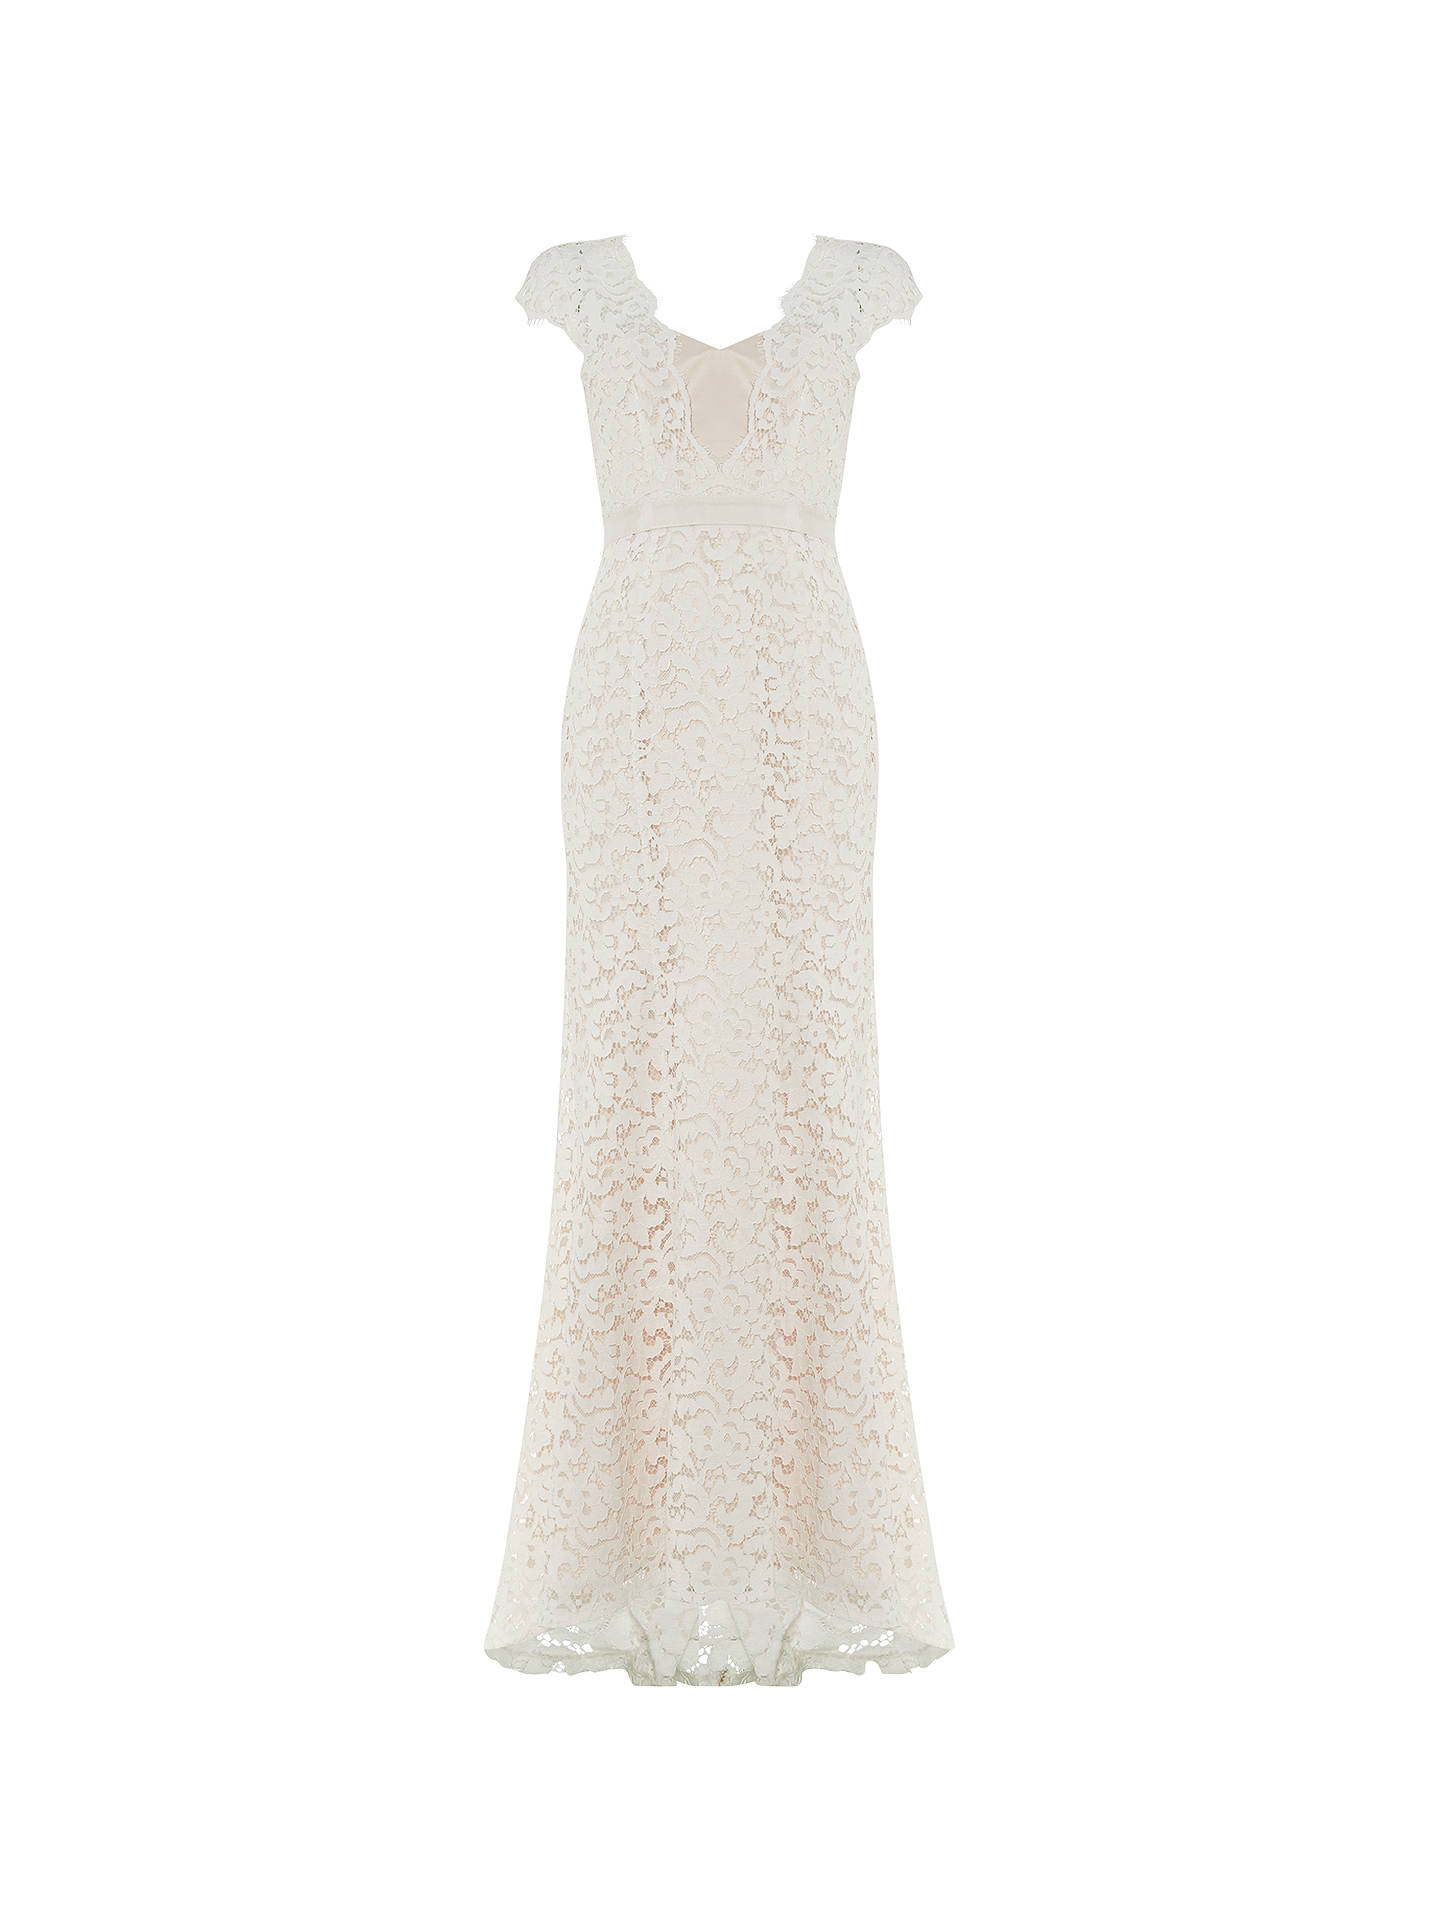 Buy Phase Eight Maegen Lace Bridal Dress, Snow, 8 Online at johnlewis.com